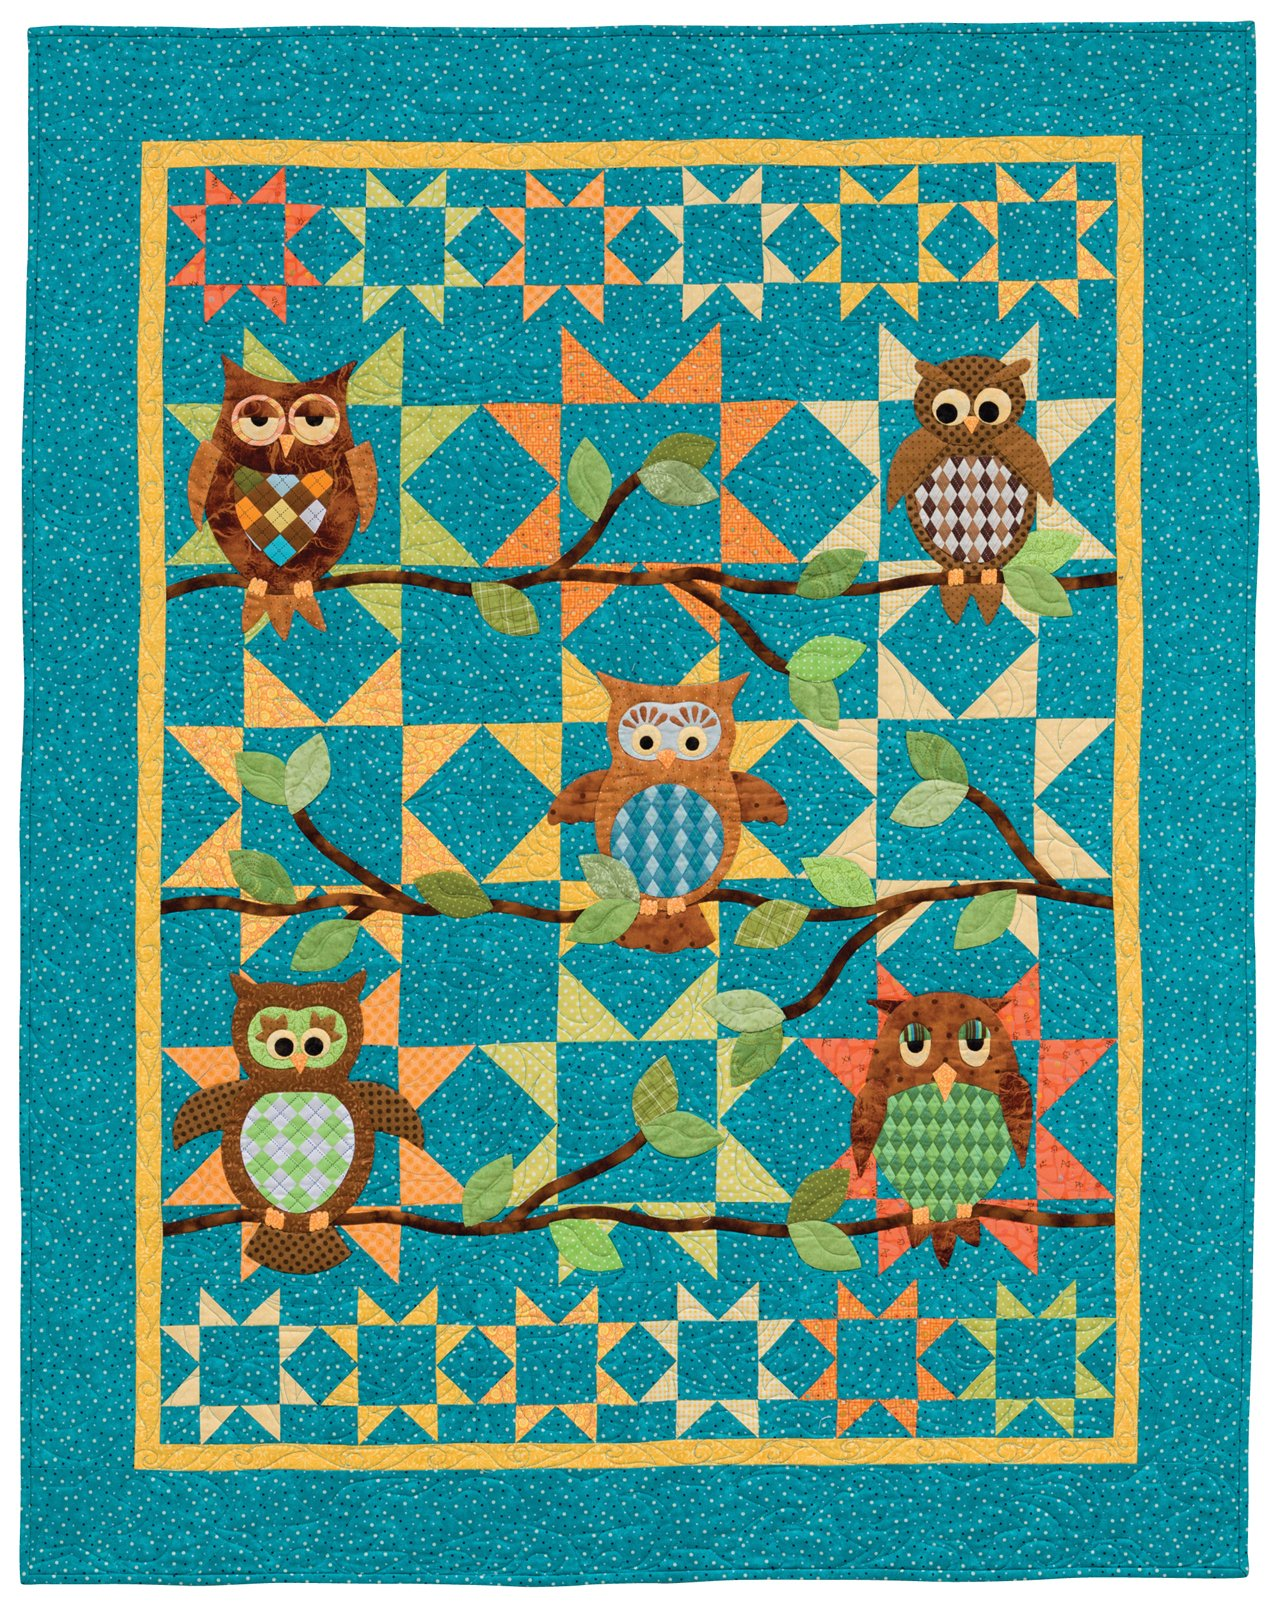 Animal Parade Adorable Applique Quilt Patterns For Babies Cheri